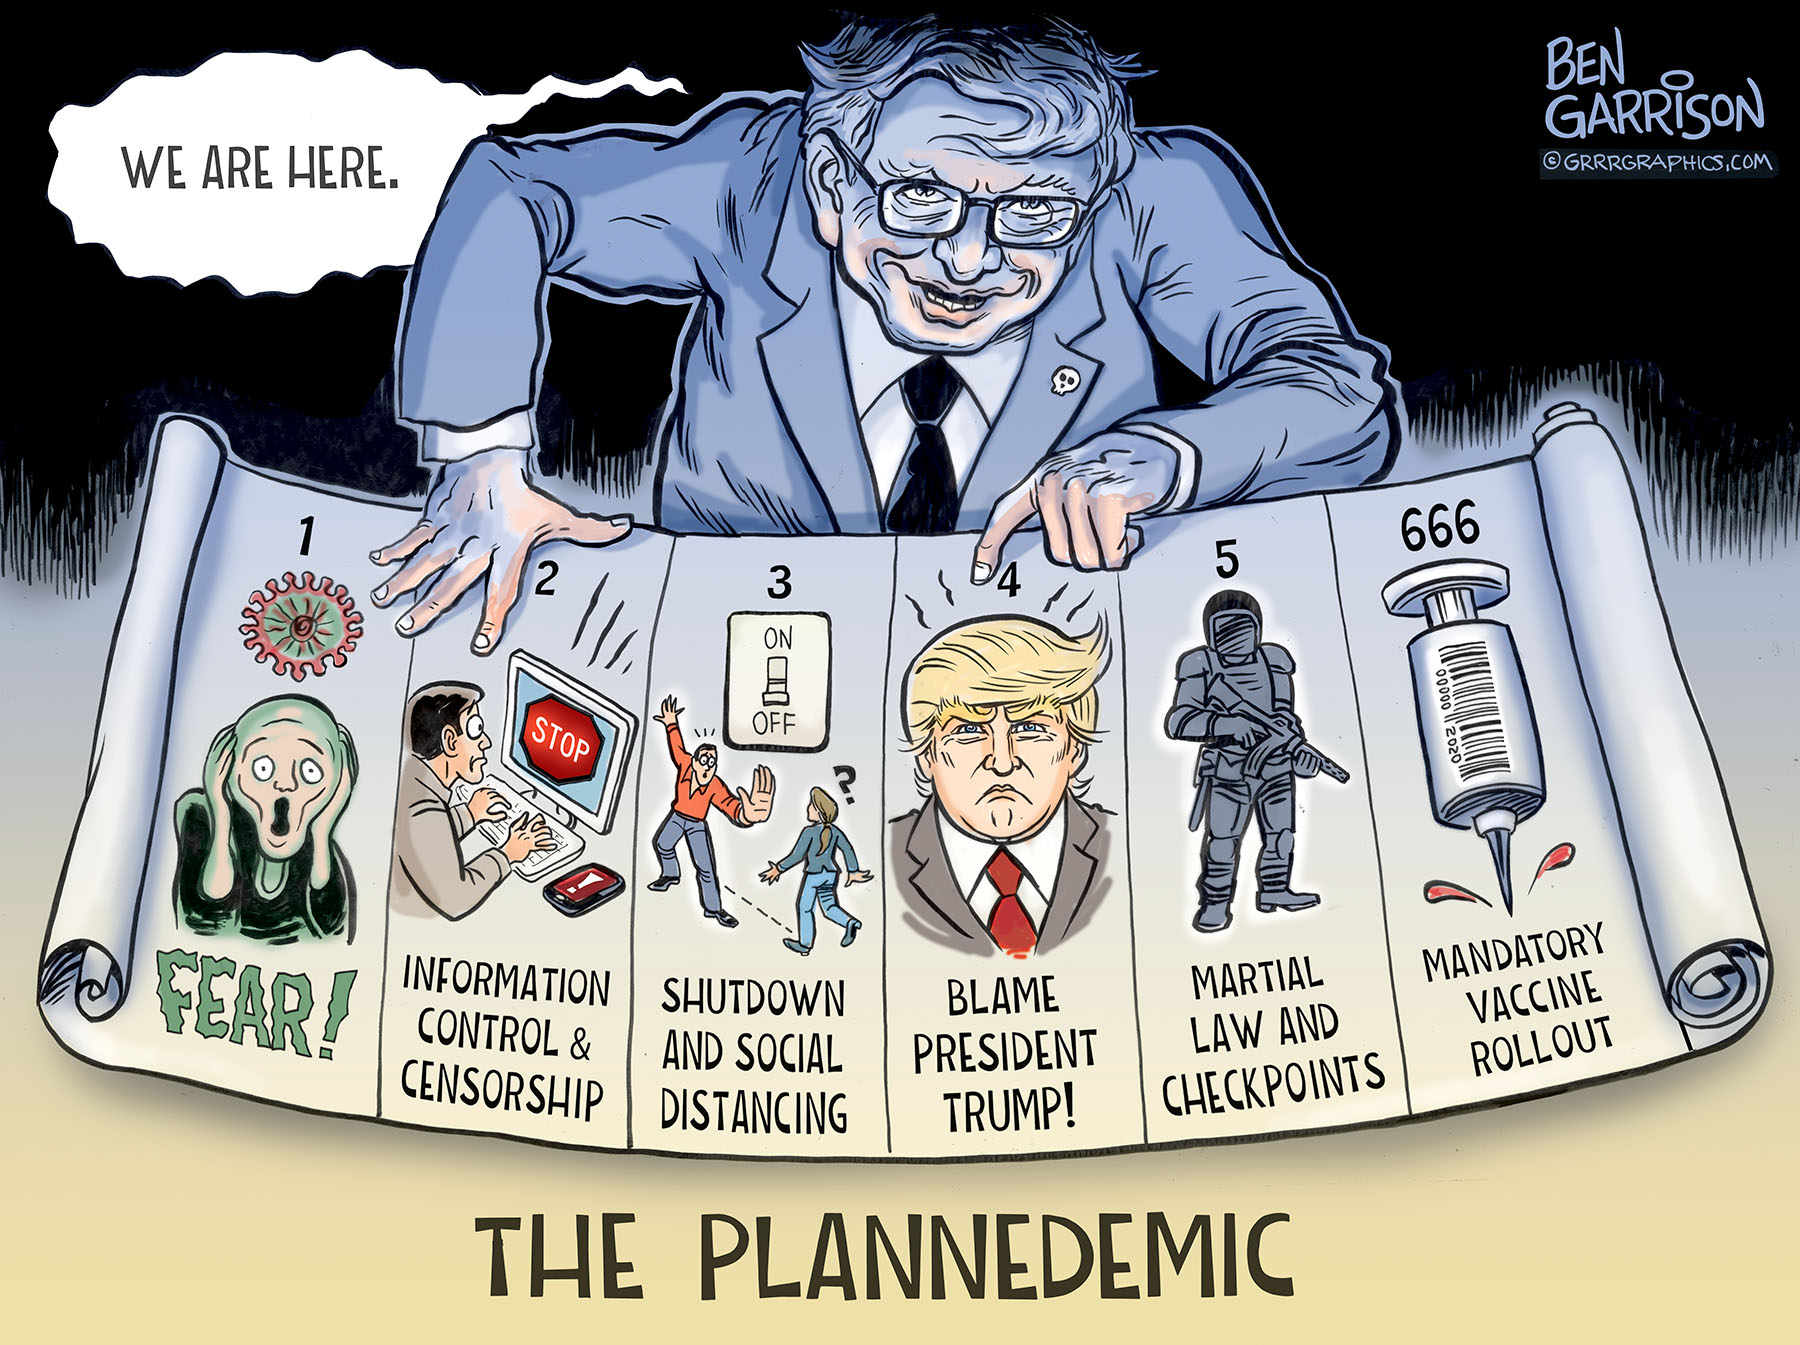 Anthony Fauci plays ball with this kind of deadly planner. Copyright 2020 Ben Garrison.